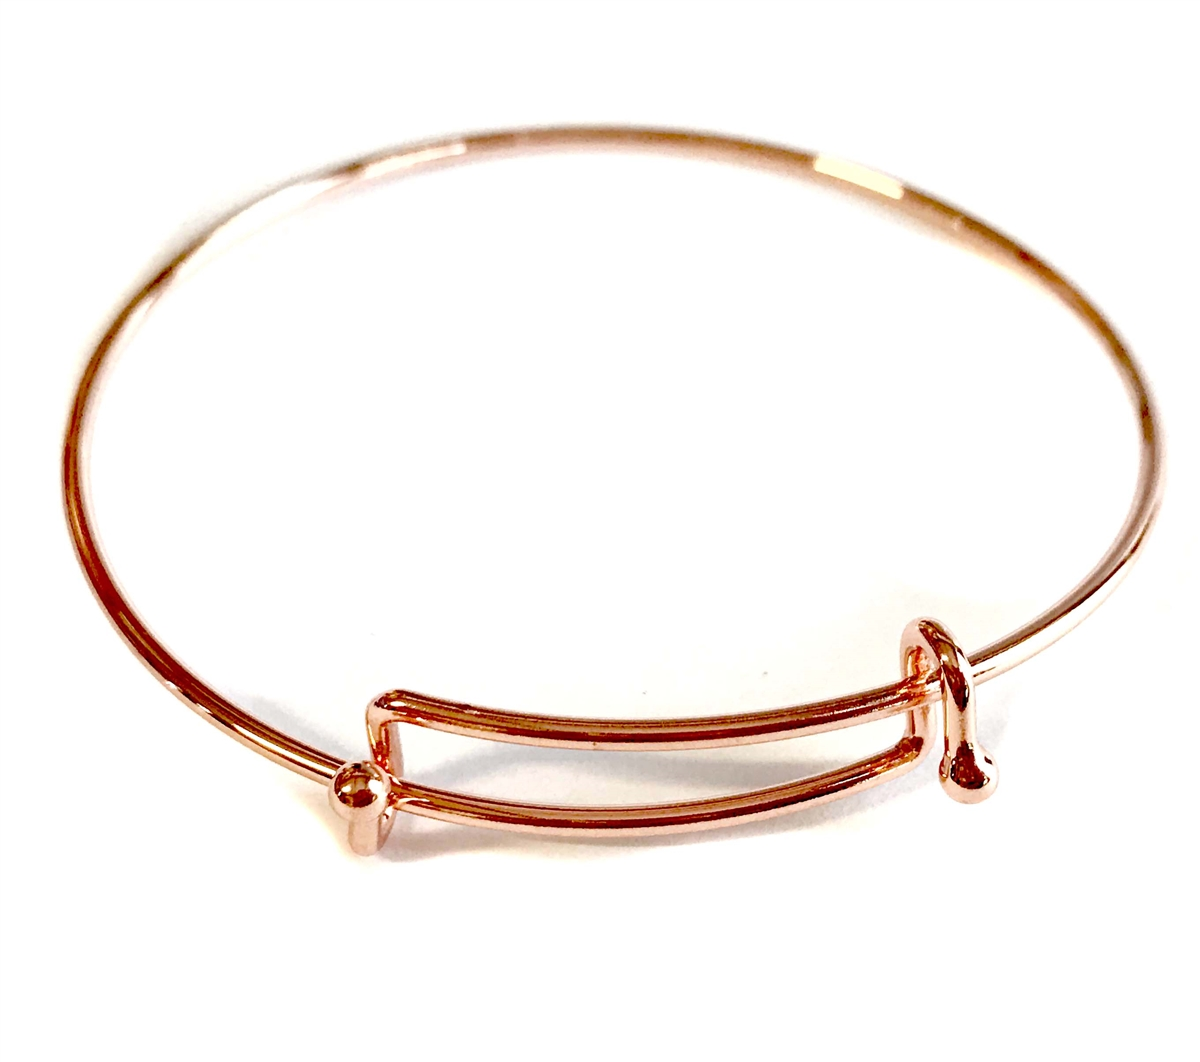 brass bracelets, wire cuffs, jewelry supplies,02987, bracelet cuff ...